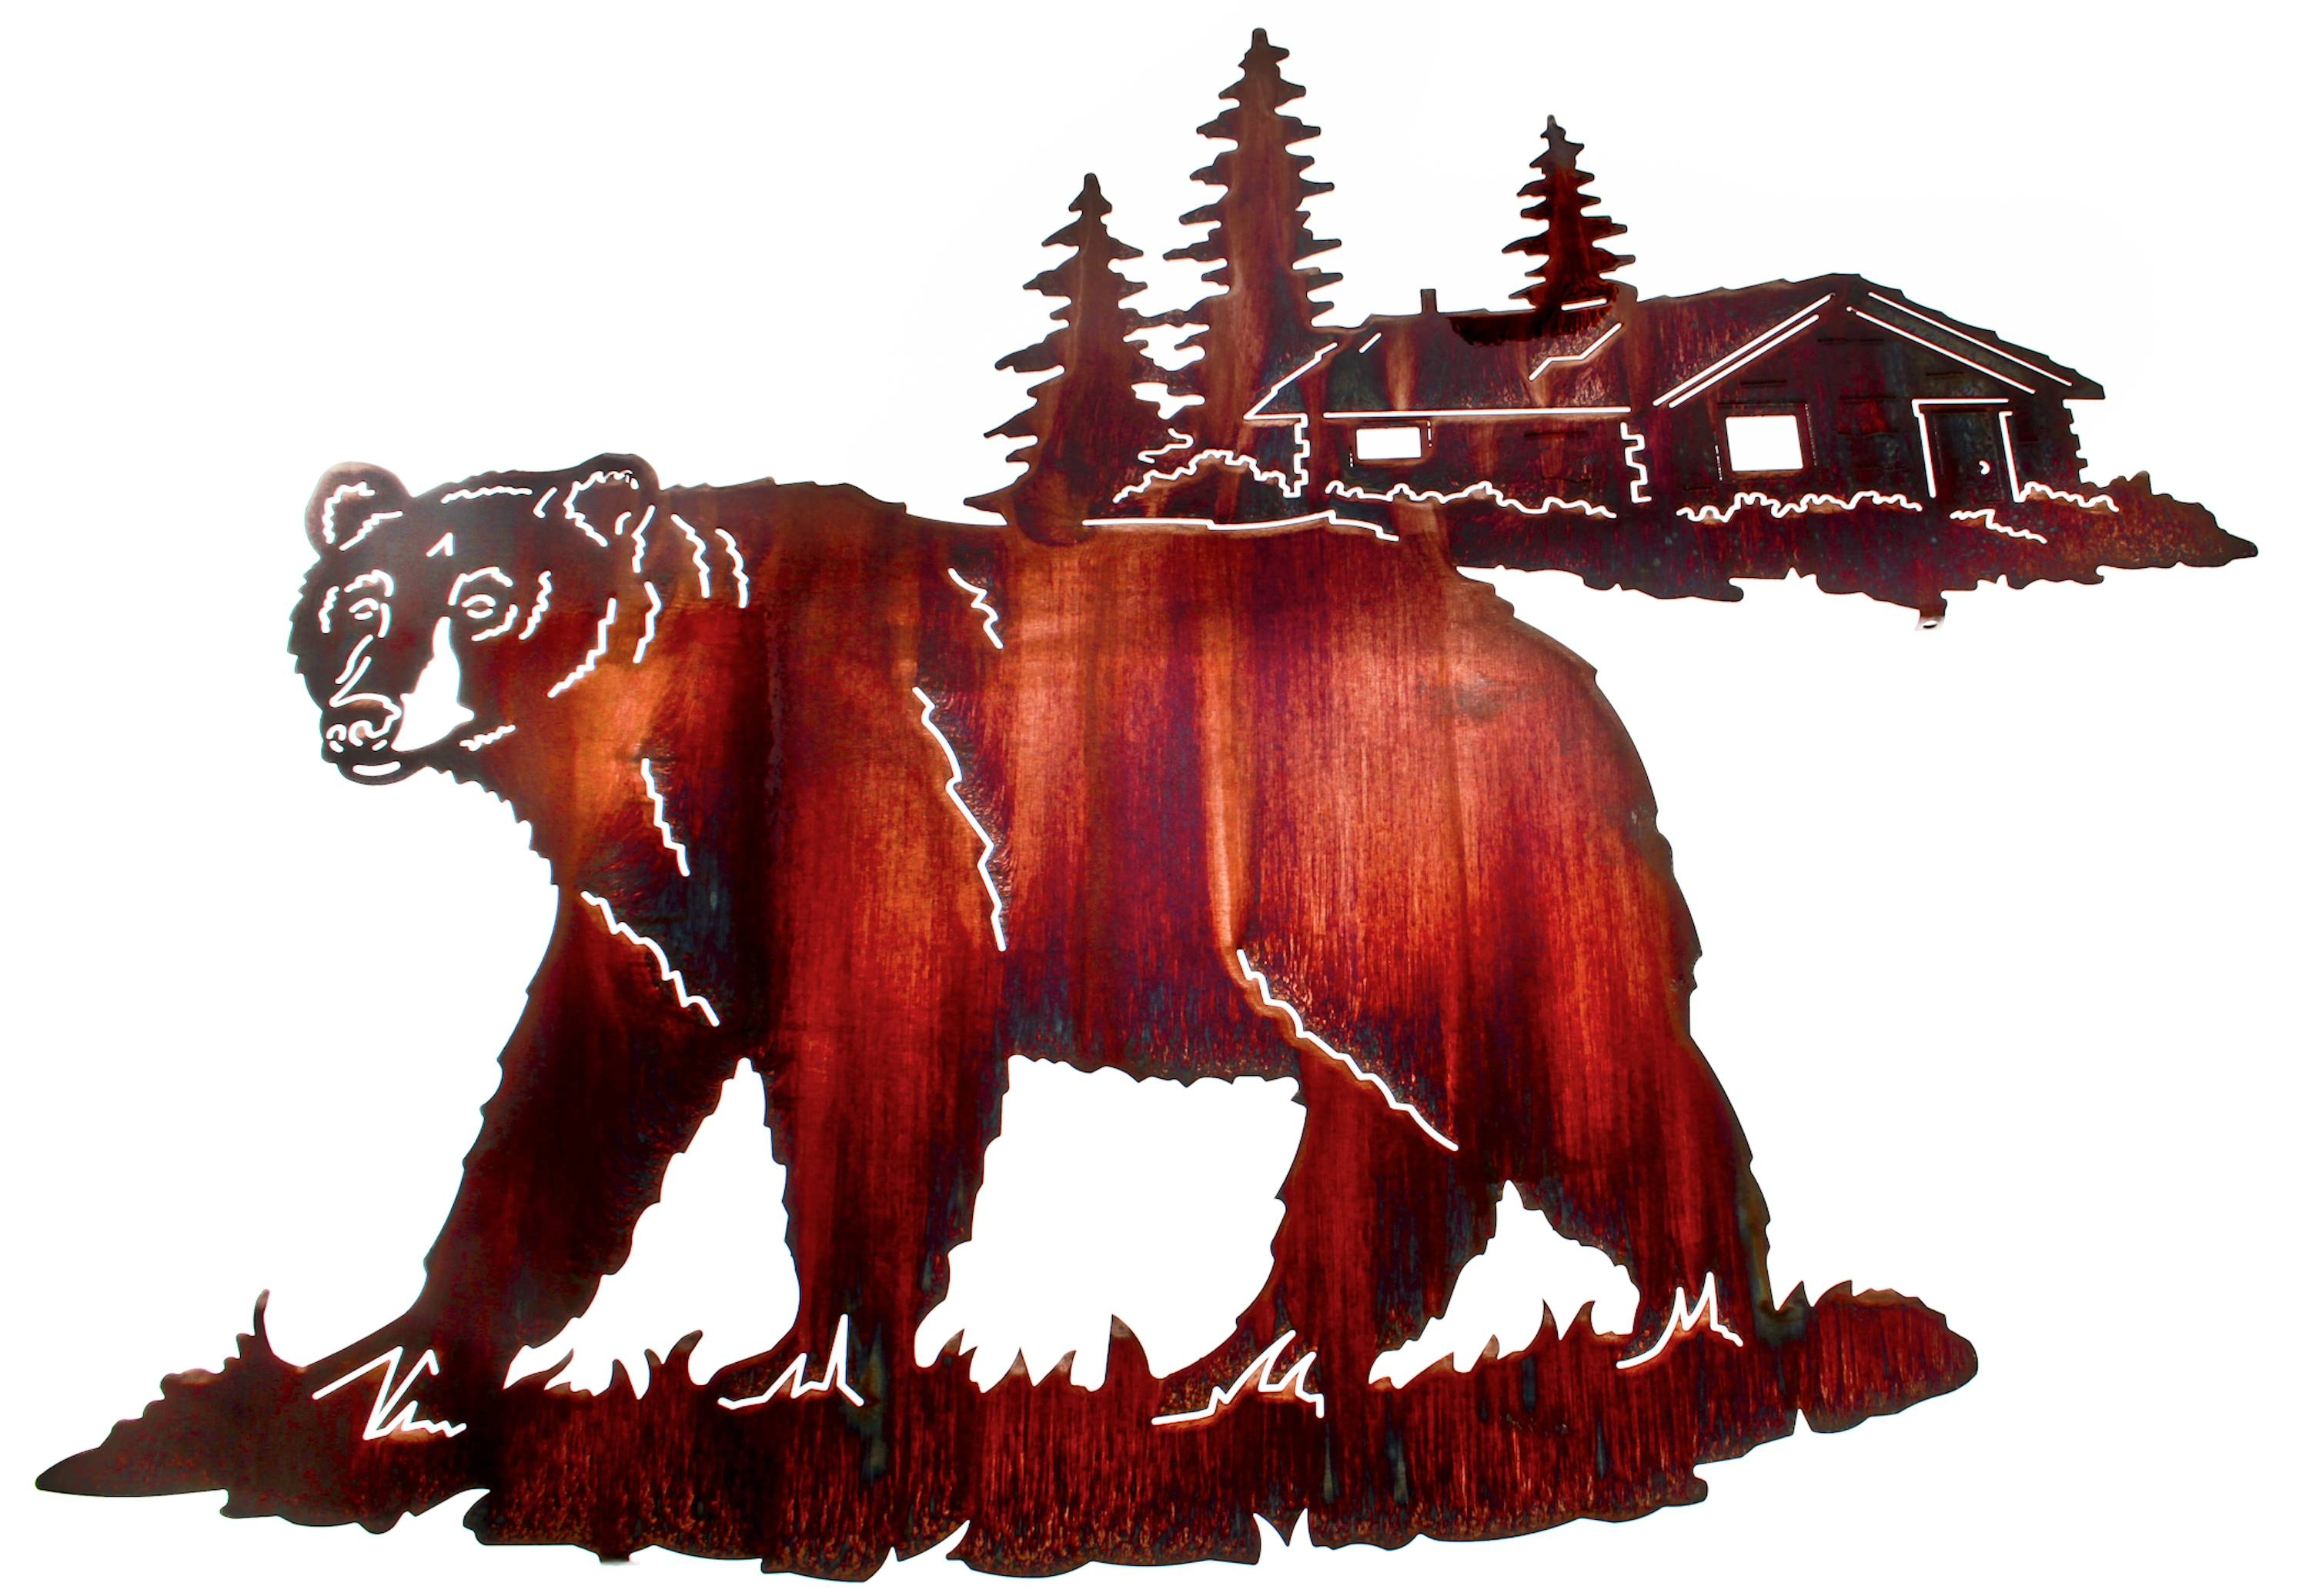 Bear Wall Art, Bear Wall Hangings, Metal Wall Sculptures Inside 2017 Metal Animal Wall Art (View 4 of 20)